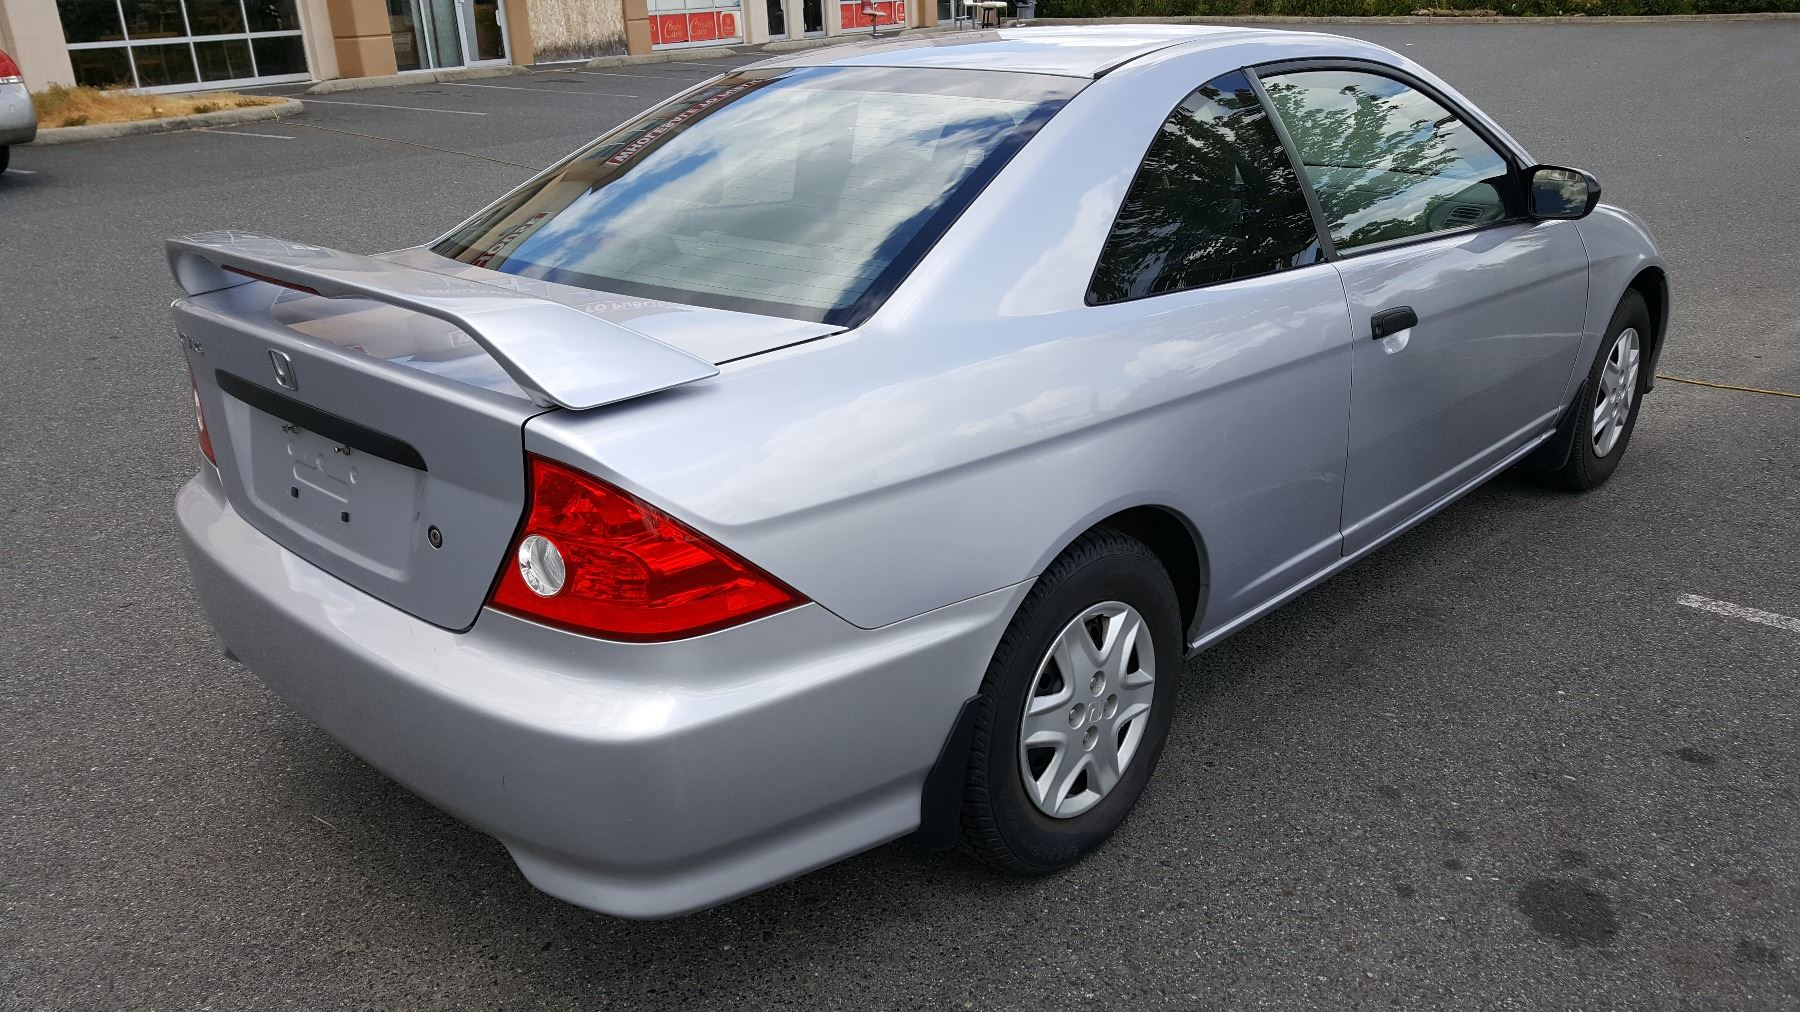 Image 4 2004 HONDA CIVIC 2 DOOR COUPE 193547KM 5 SPEED MANUAL WITH 3 KEYS